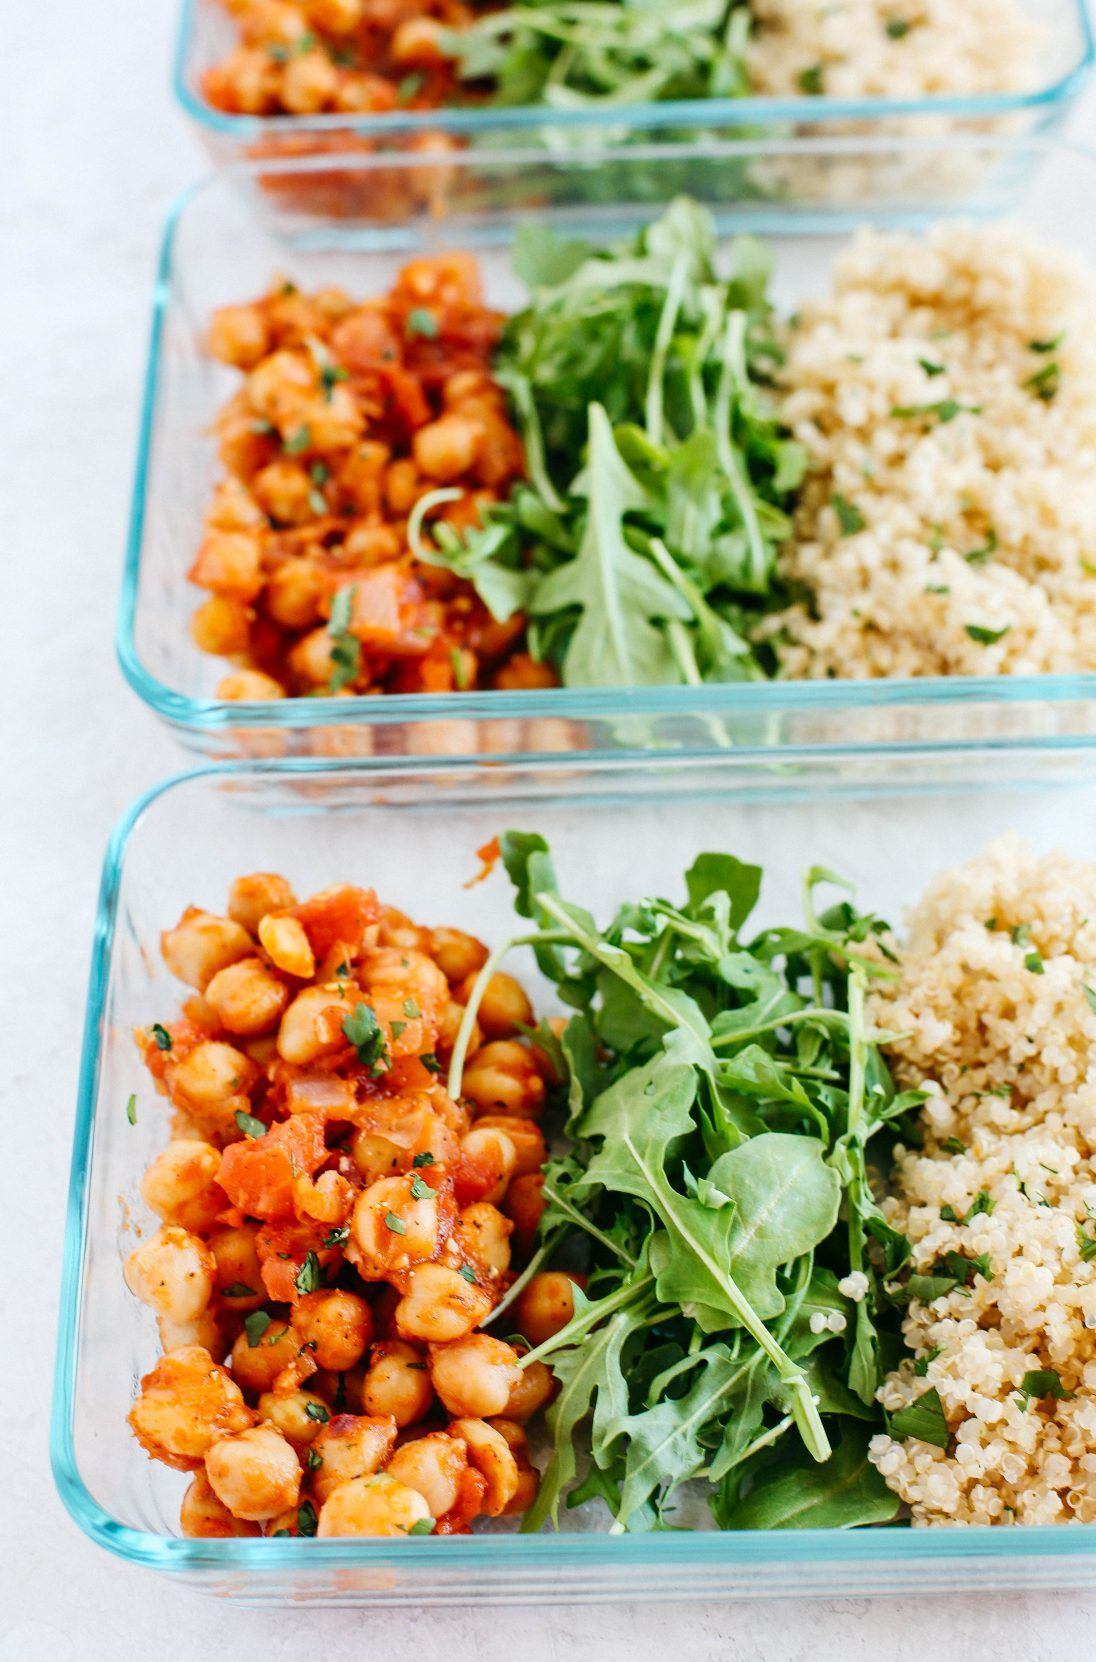 Spicy Chickpea And Quinoa Bowls